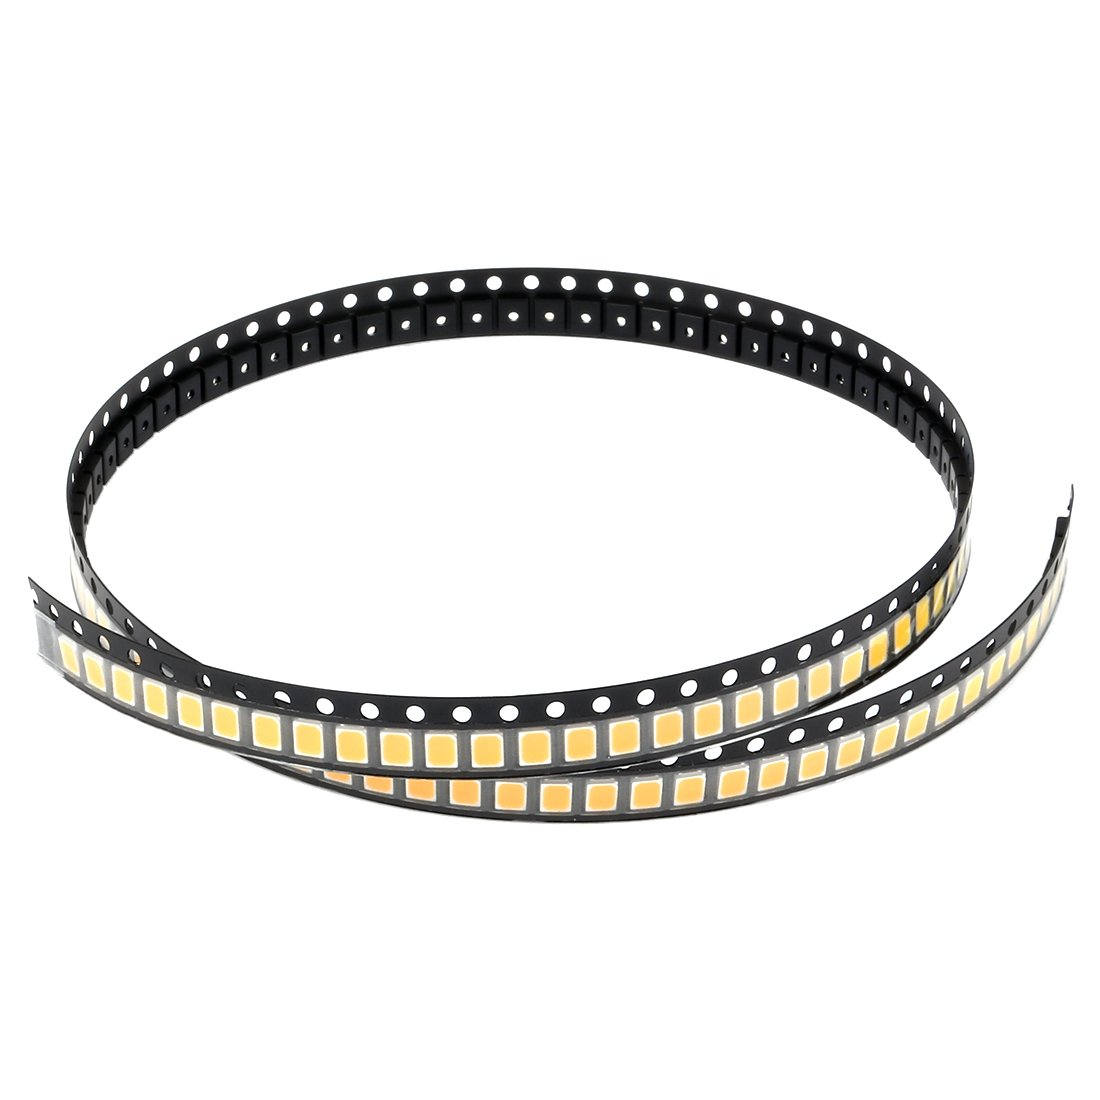 uxcell 100pcs 2835 3000K Warm White SMD LED Diode Lights(Mount Chip DC 3-3.4V 60mA) Super Bright Electronics Components Light Emitting Diodes a17051500ux0011